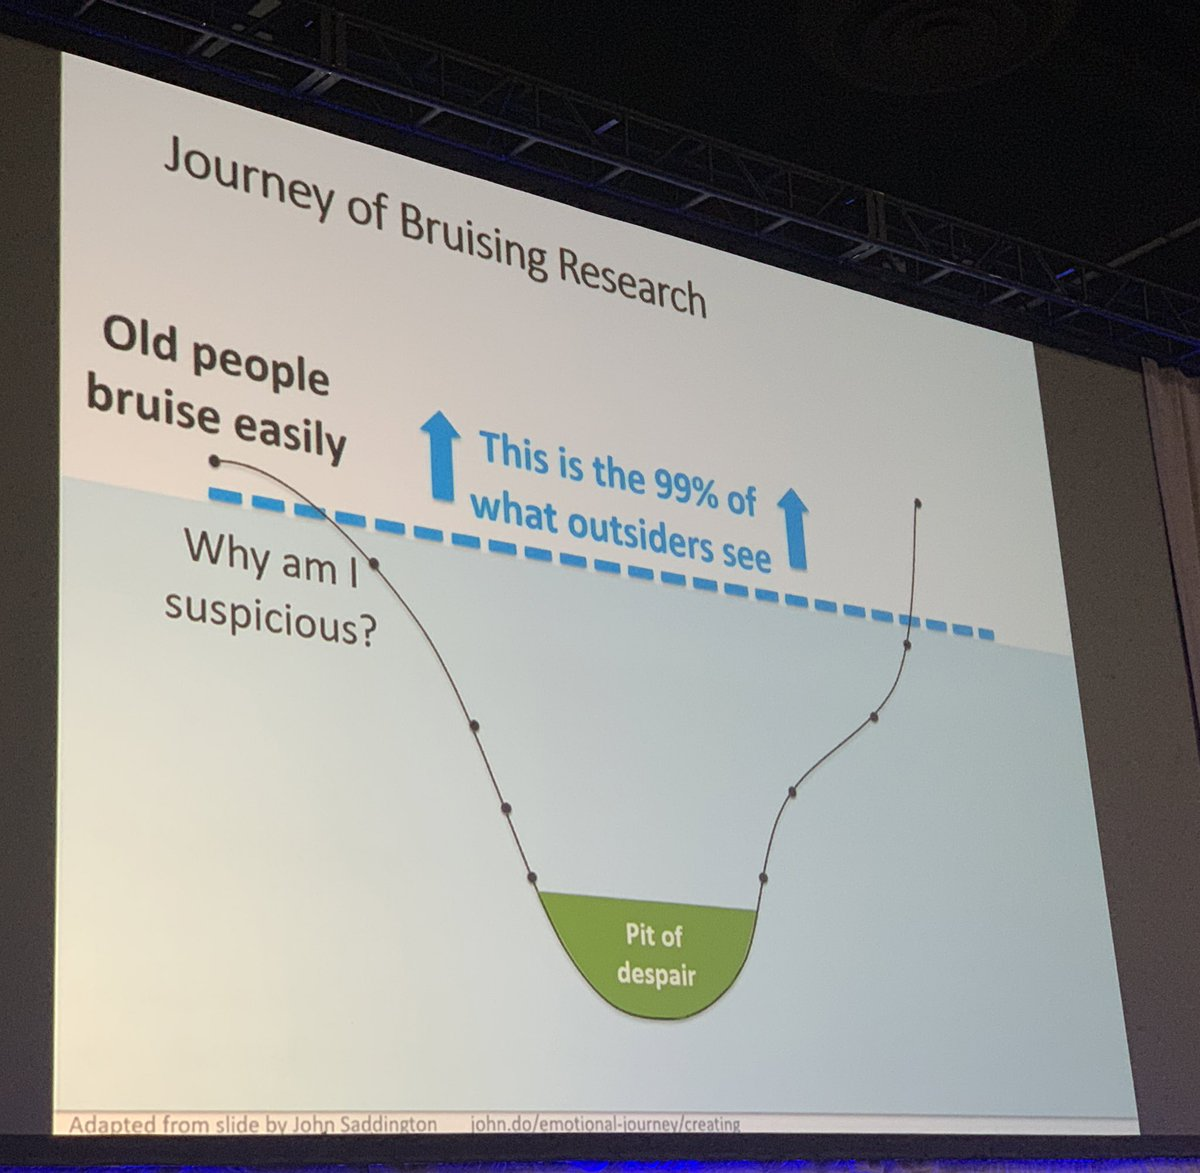 Bruising, a #forensic marker of abuse, the result of 15 years of research after slogging through the #pitofdespair, or she persevered - #lauramosqueda #AGS19 #Geriatrics